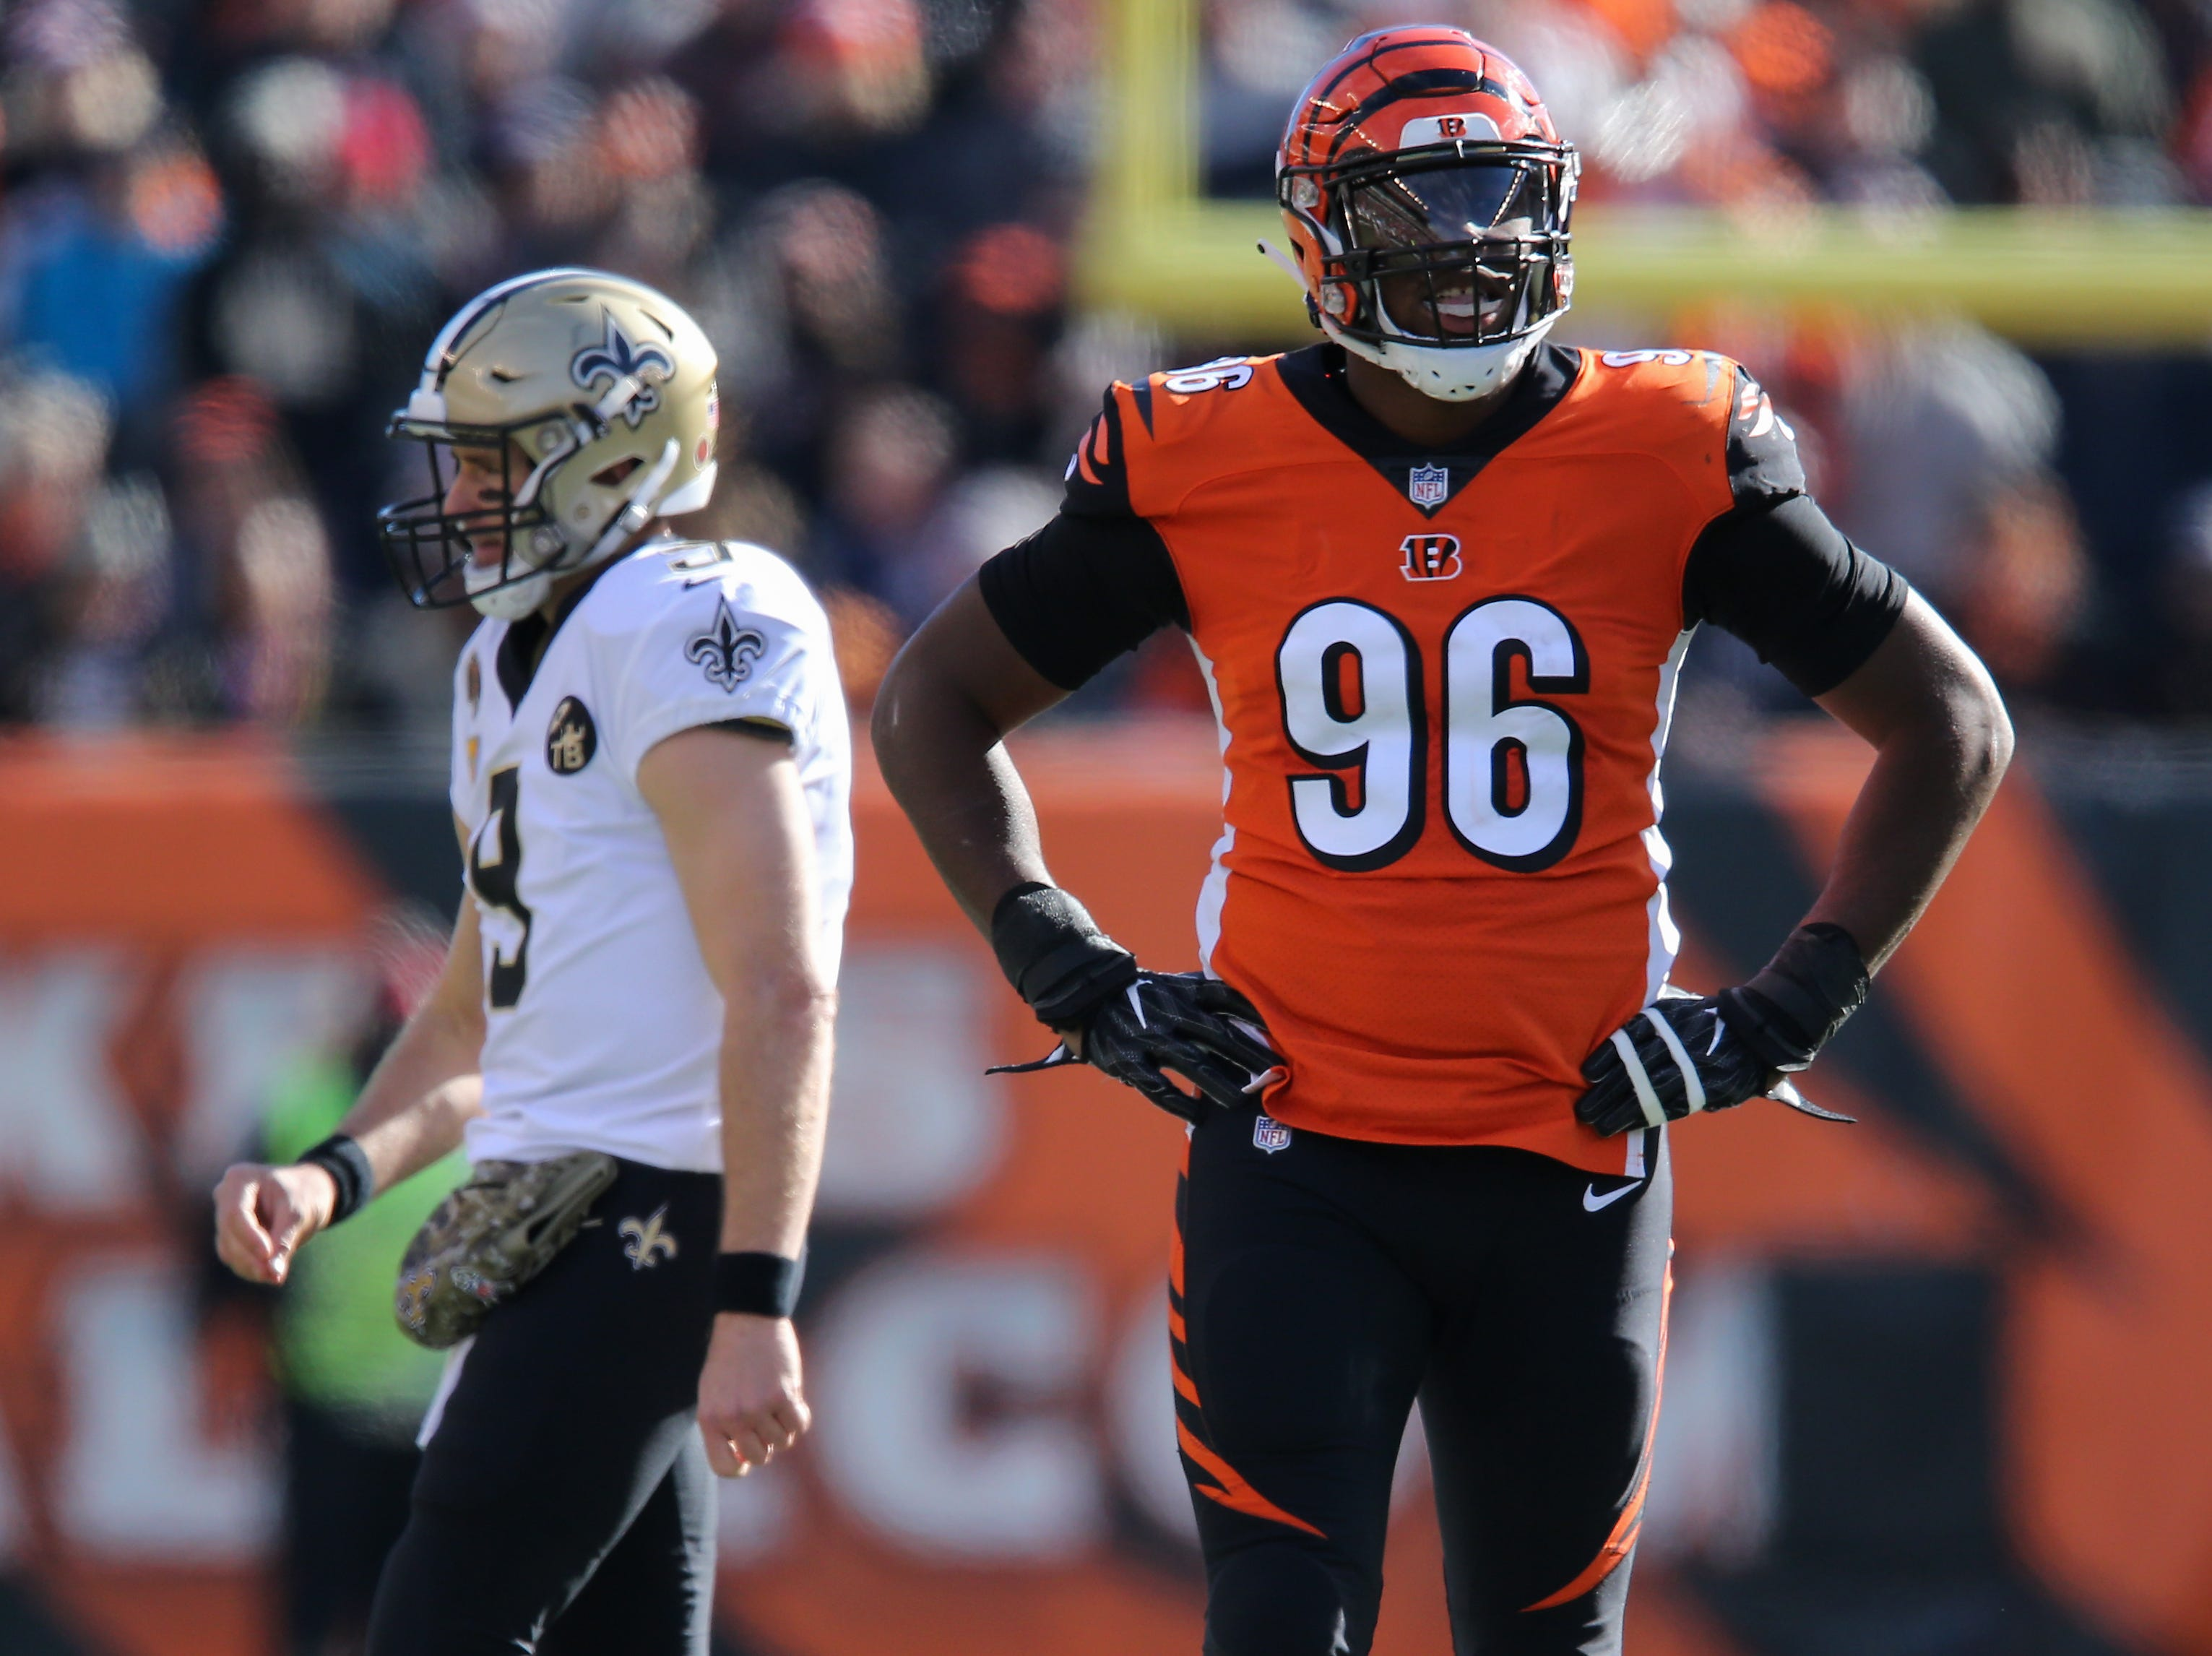 Cincinnati Bengals defensive end Carlos Dunlap (96) smiles and rests his hands on his hips as New Orleans Saints quarterback Drew Brees (9) walks in the background in the second quarter of a Week 10 NFL game between the New Orleans Saints and the Cincinnati Bengals, Sunday, Nov. 11, 2018, at Paul Brown Stadium in Cincinnati.